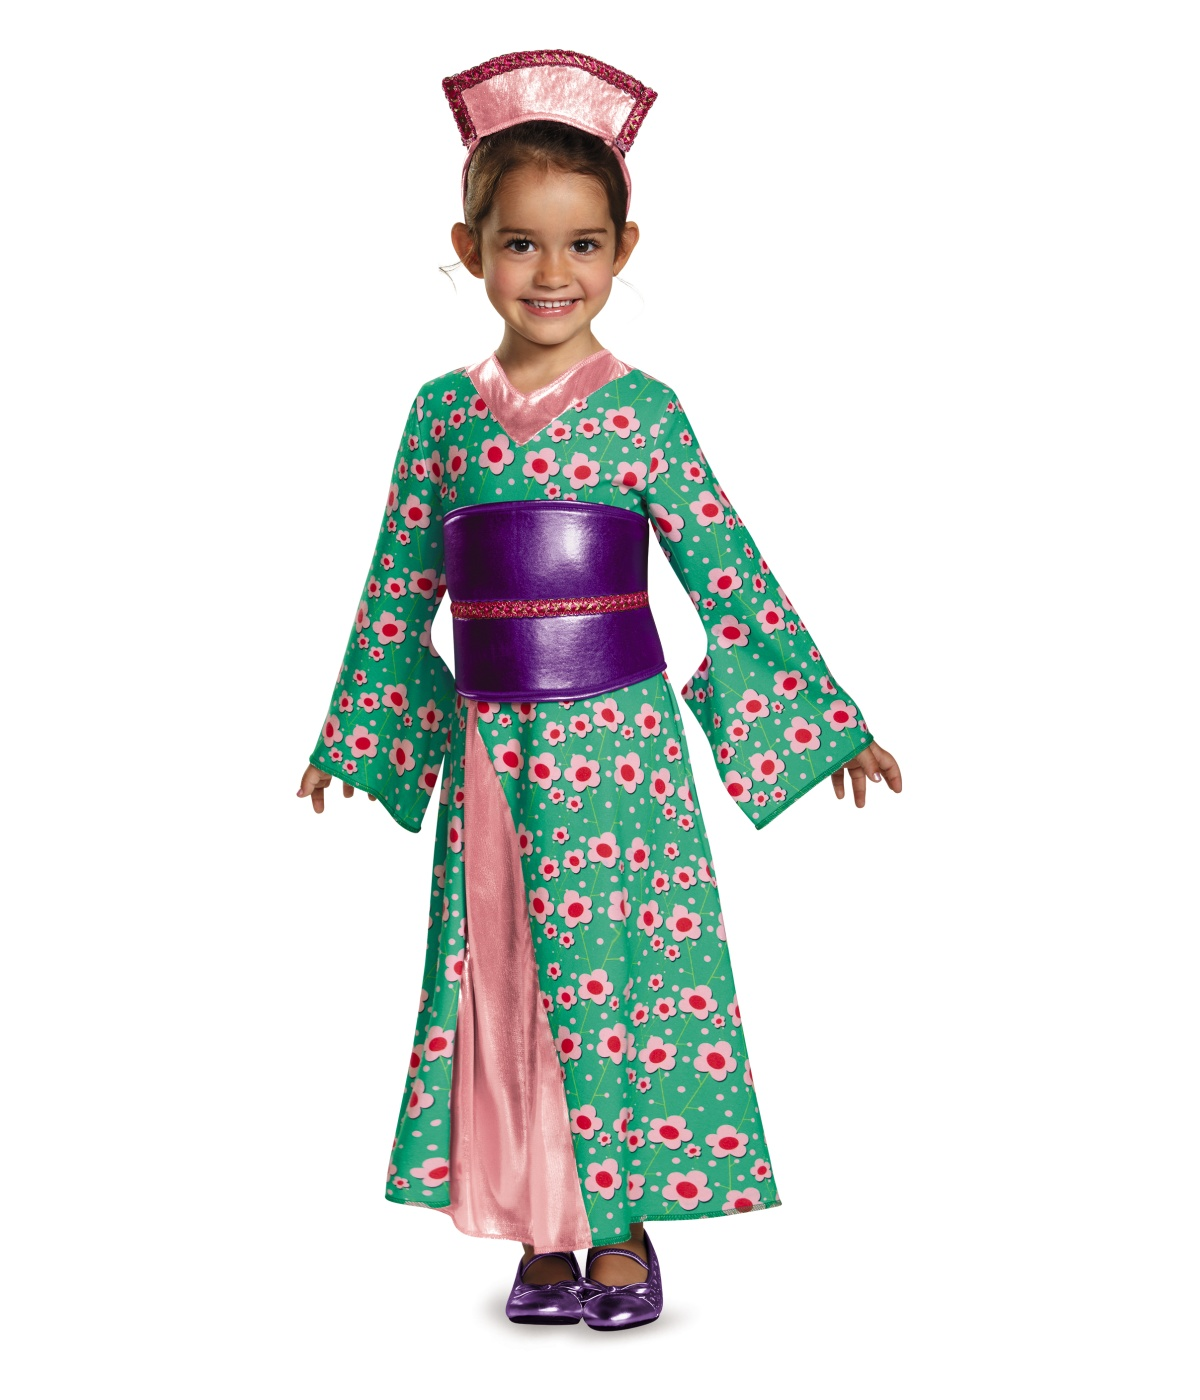 sc 1 st  Halloween Costumes & Kimono Cutie Girls Princess Toddler Costume - International Costumes